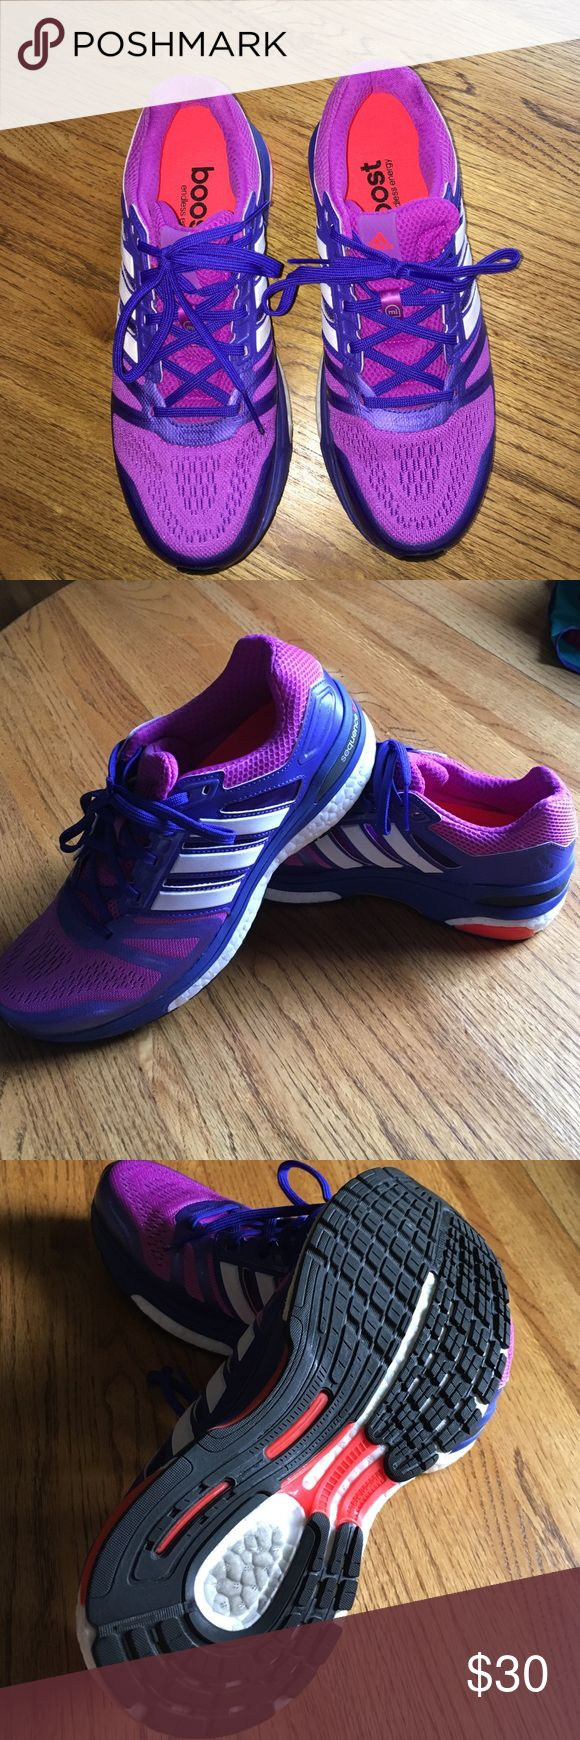 Adidas Supernova Sequence Boost women's shoes Excellent condition. Worn 2 times in gym and decided they are too big for me. Super comfortable shoes. adidas Shoes Athletic Shoes